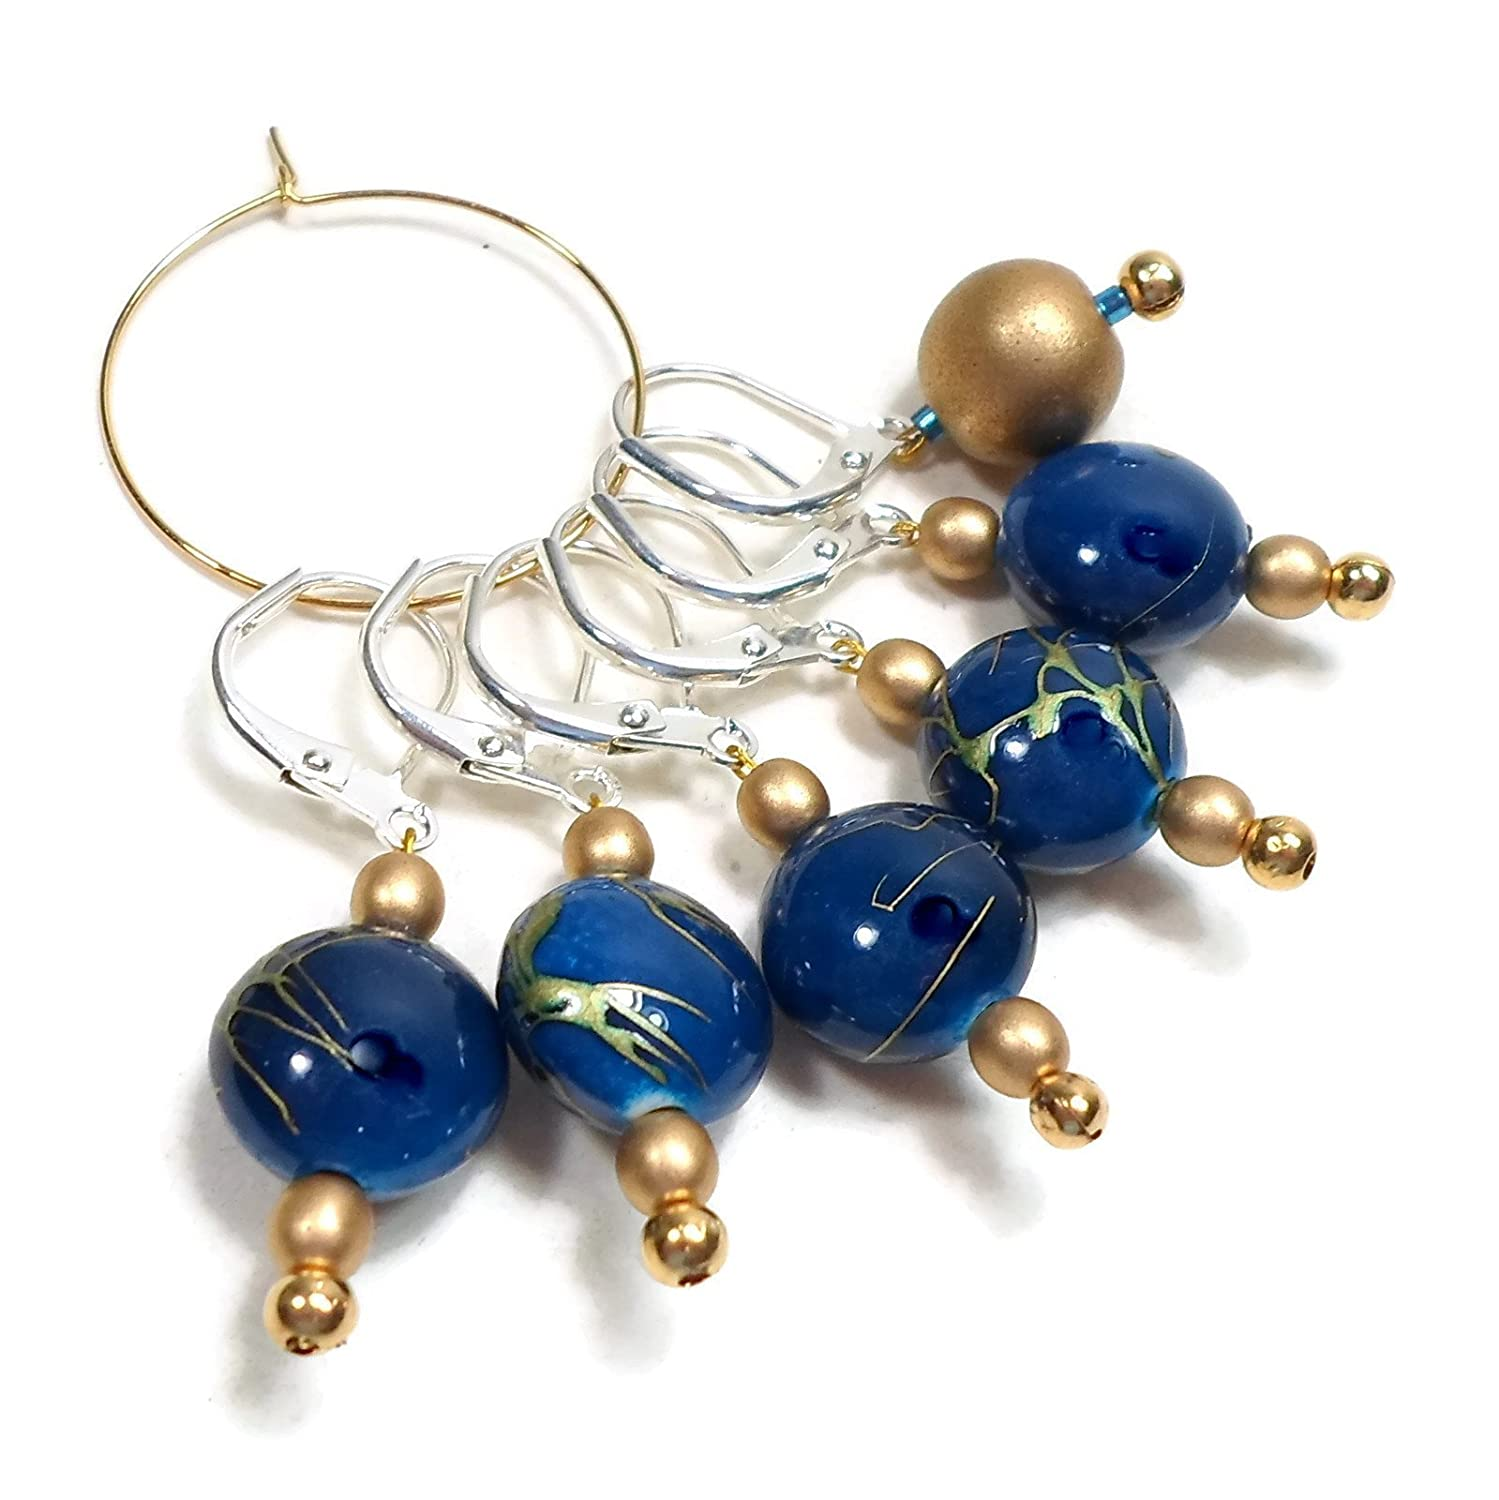 Removable Locking Stitch Markers for Crochet and Knitting Blue Gold Line